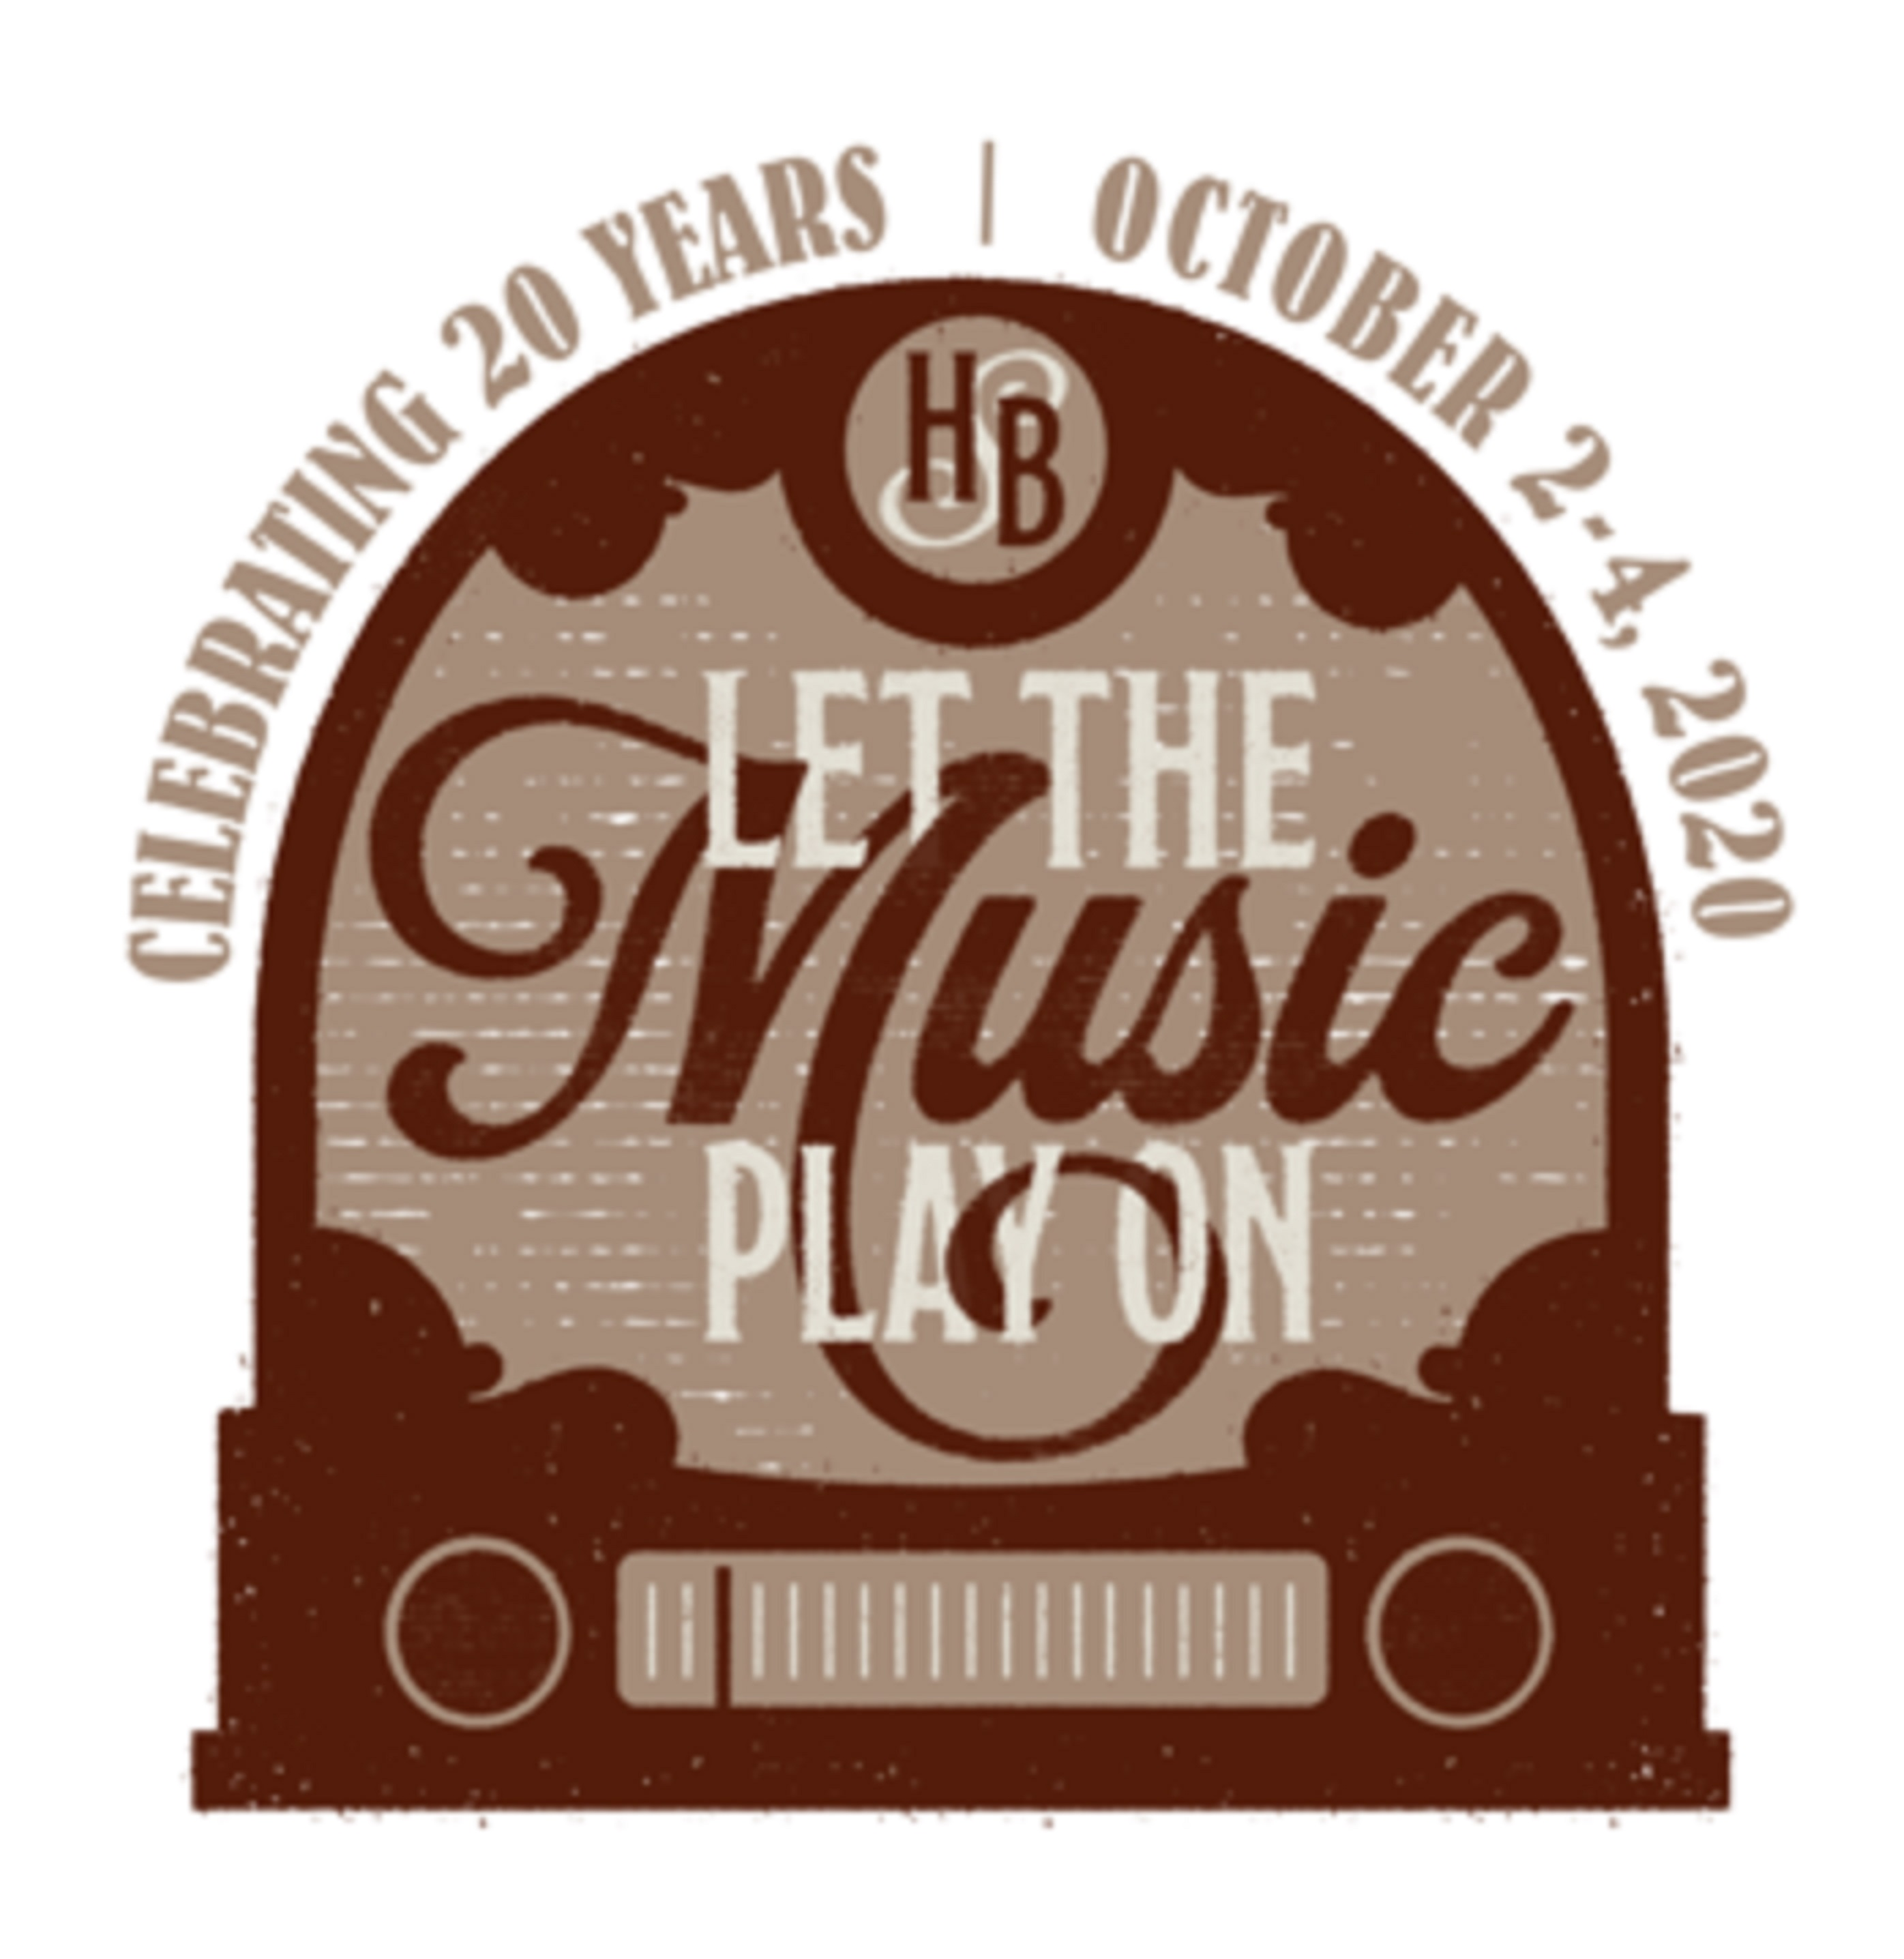 Hardly Strictly Bluegrass Announces Let the Music Play On...